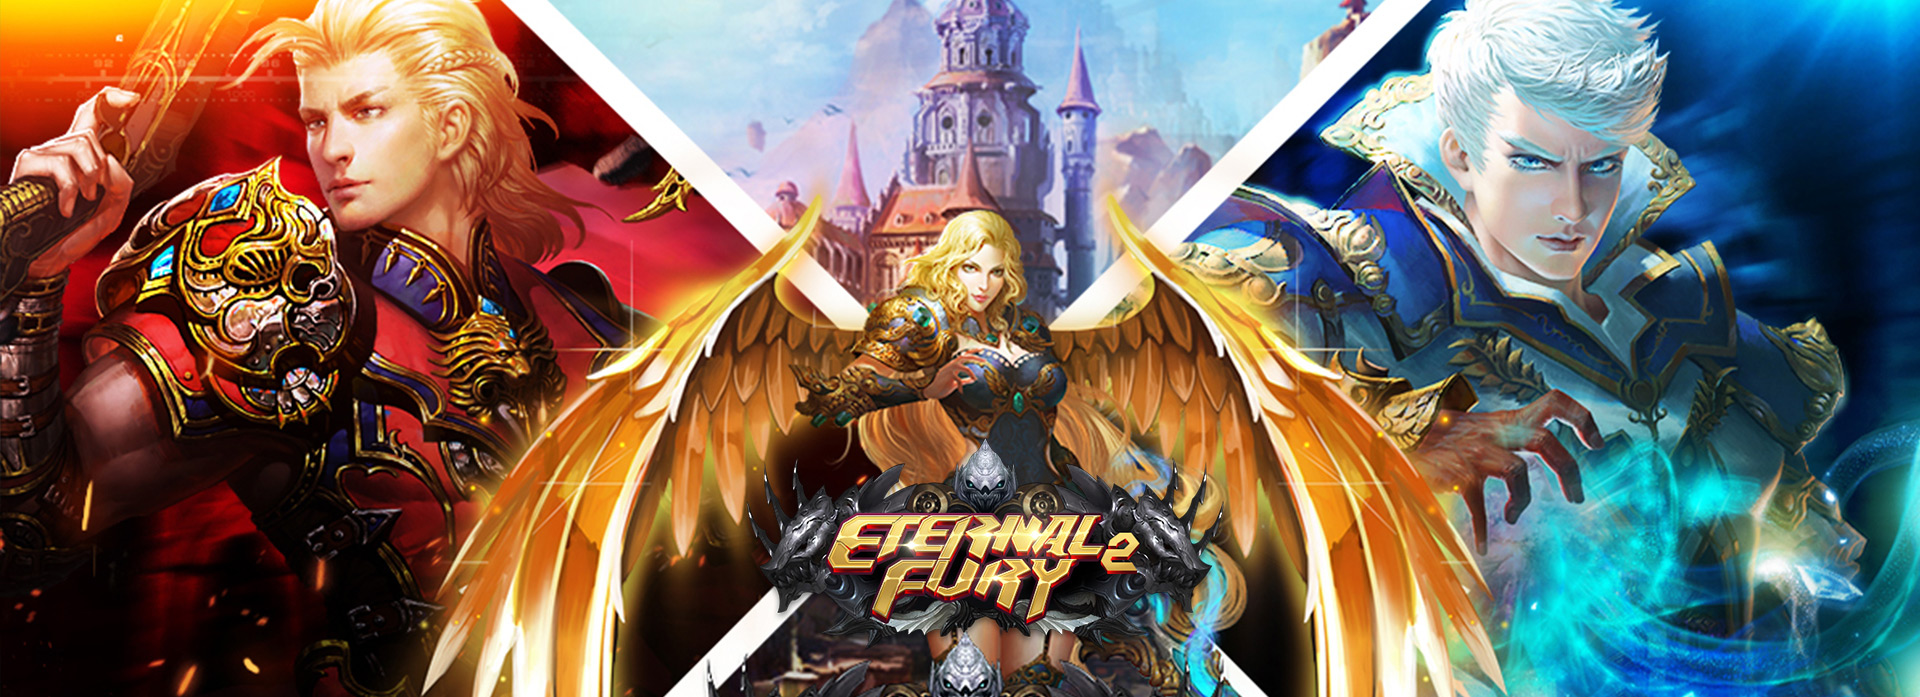 Eternal Fury 2